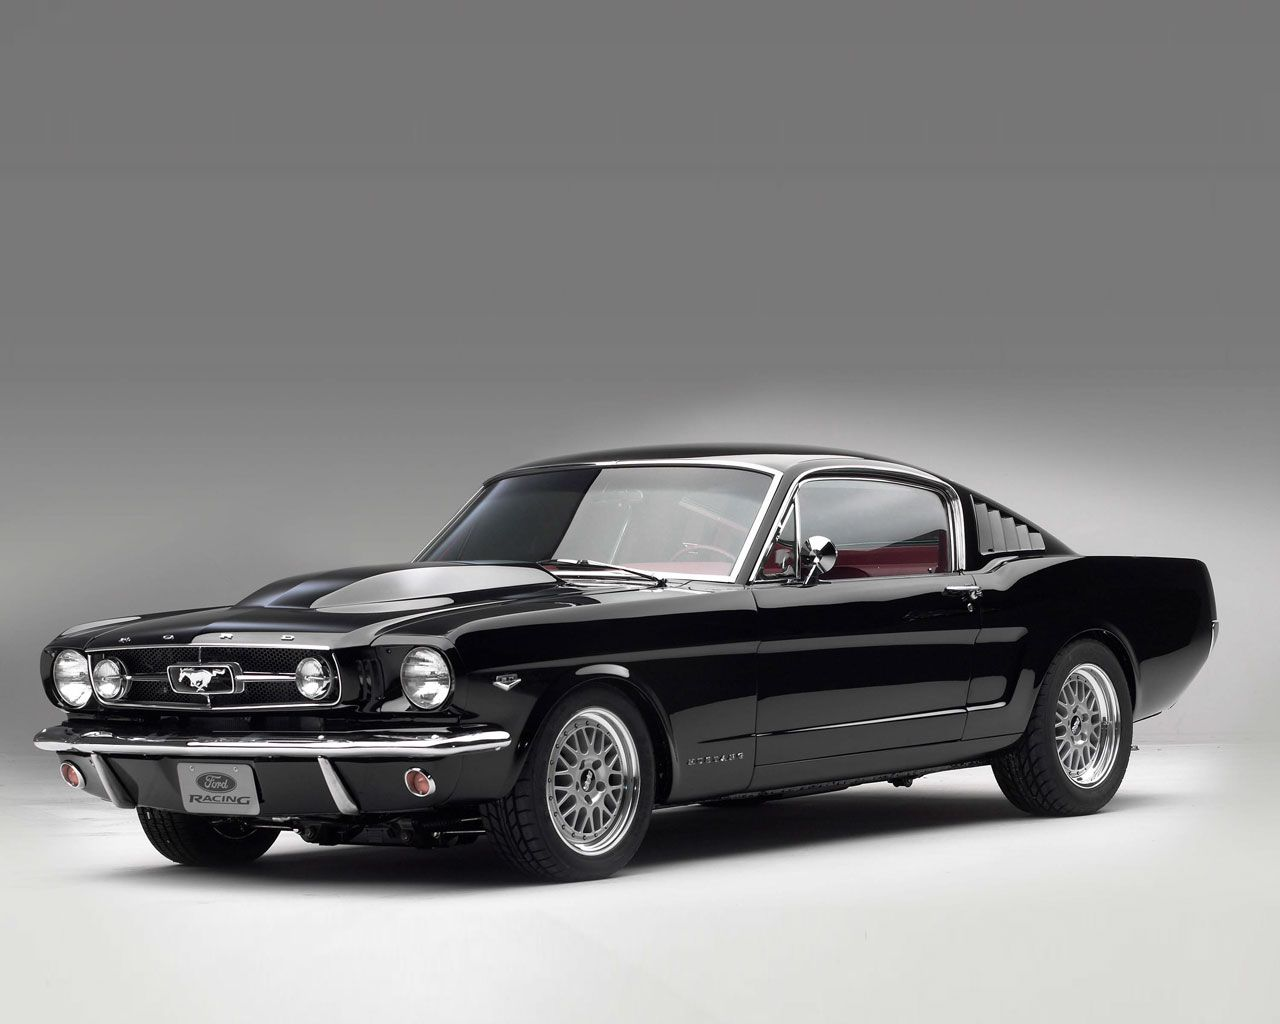 vintage cars | Ford Classic Cars | Classic Automobiles